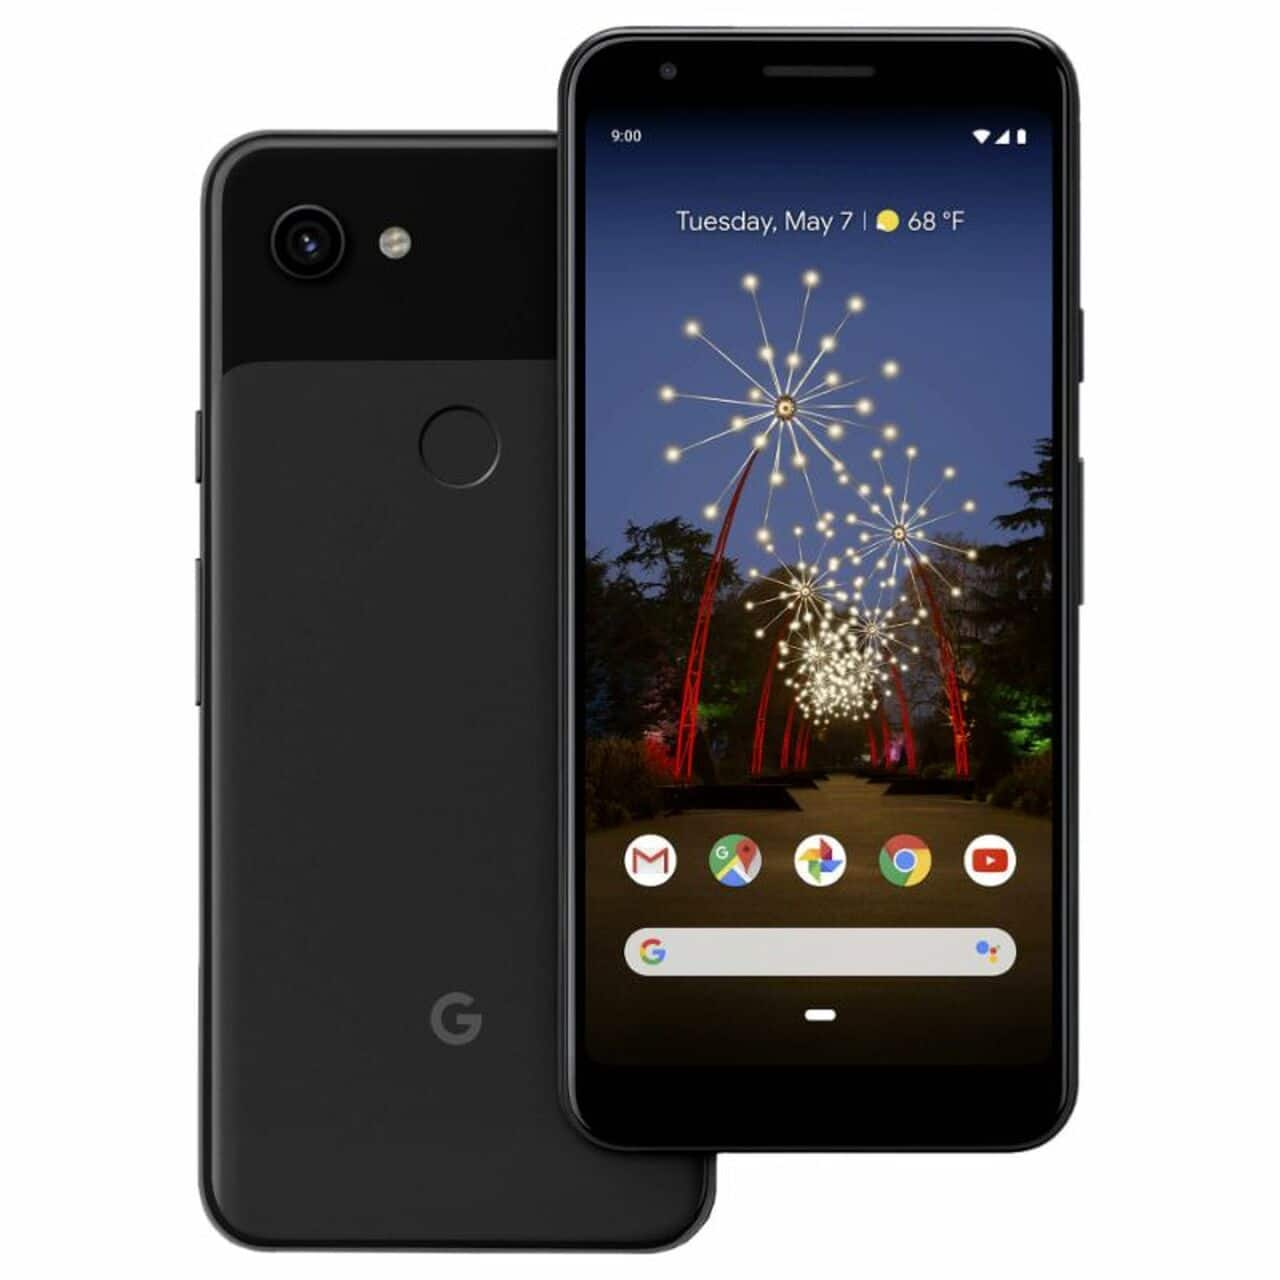 Google Pixel 3A 64GB refurb $83.99 Free shipping + Free Returns from DailySteals.com